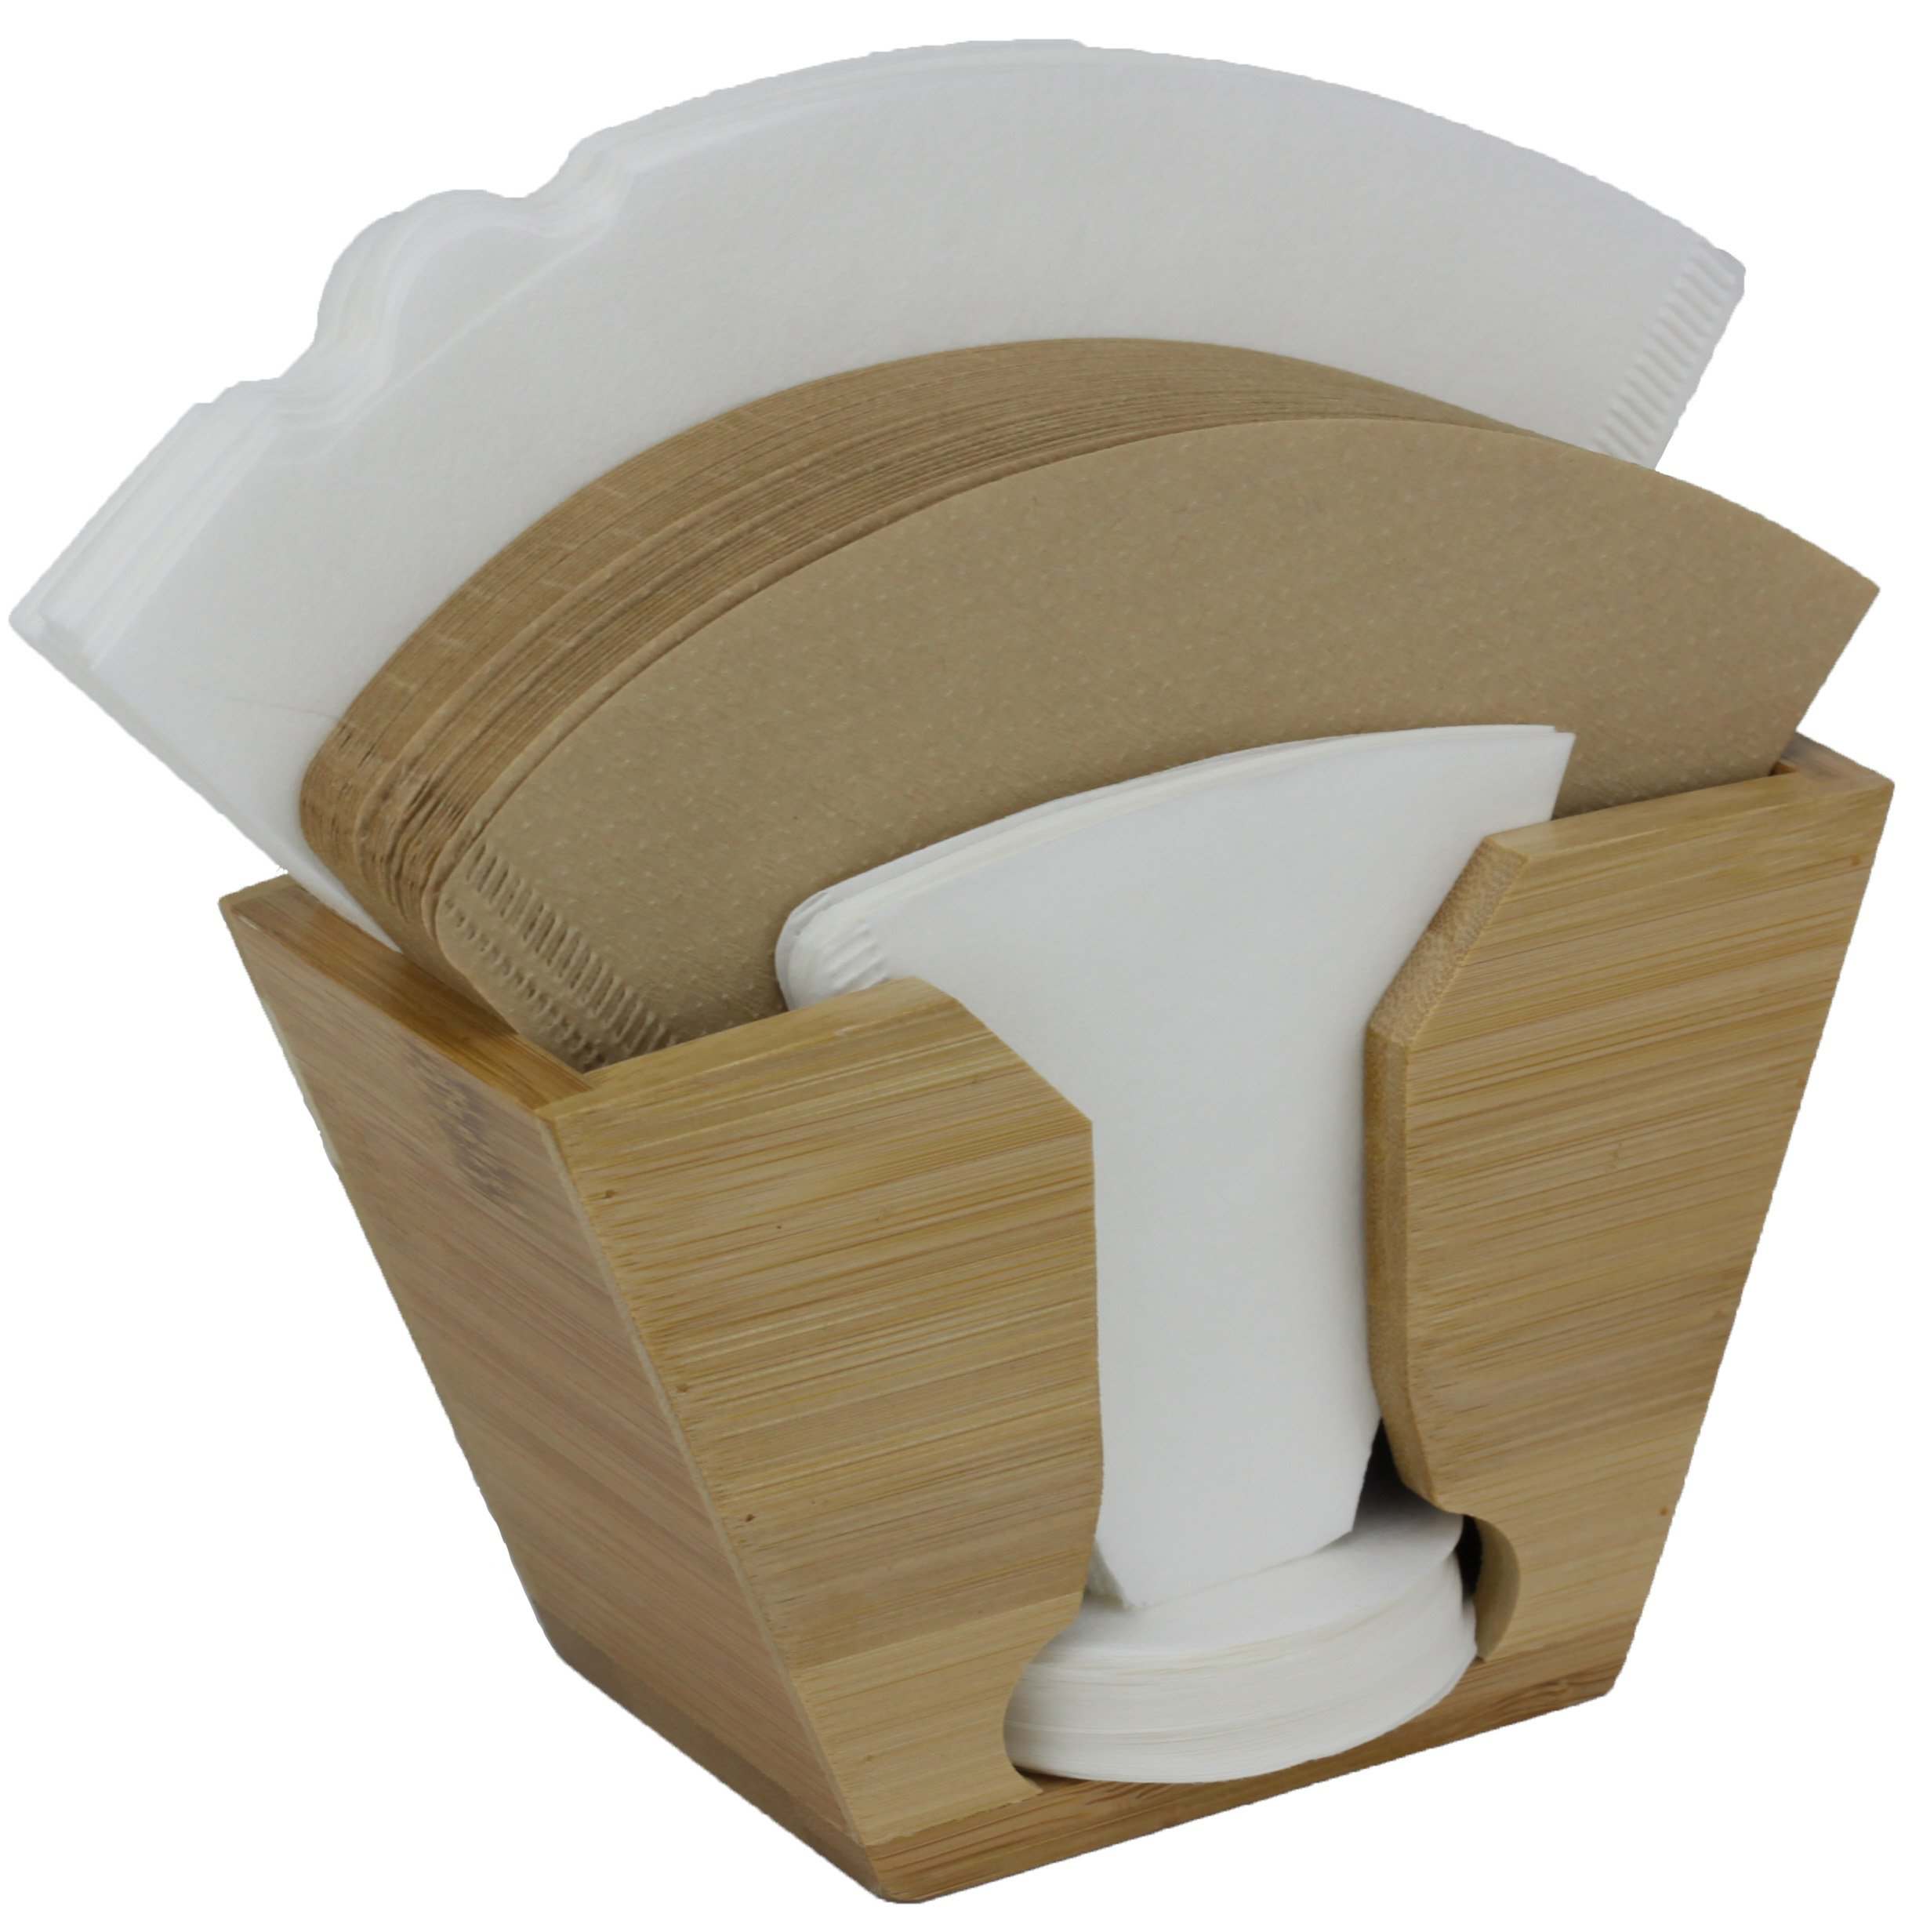 Coffee Filter Holder made from sustainable natural Bamboo. Imagine never looking the ugly ripped open paper filter box again that gets damp and wet on our counter. Fits all sizes: #4, 6 Millita, Hari